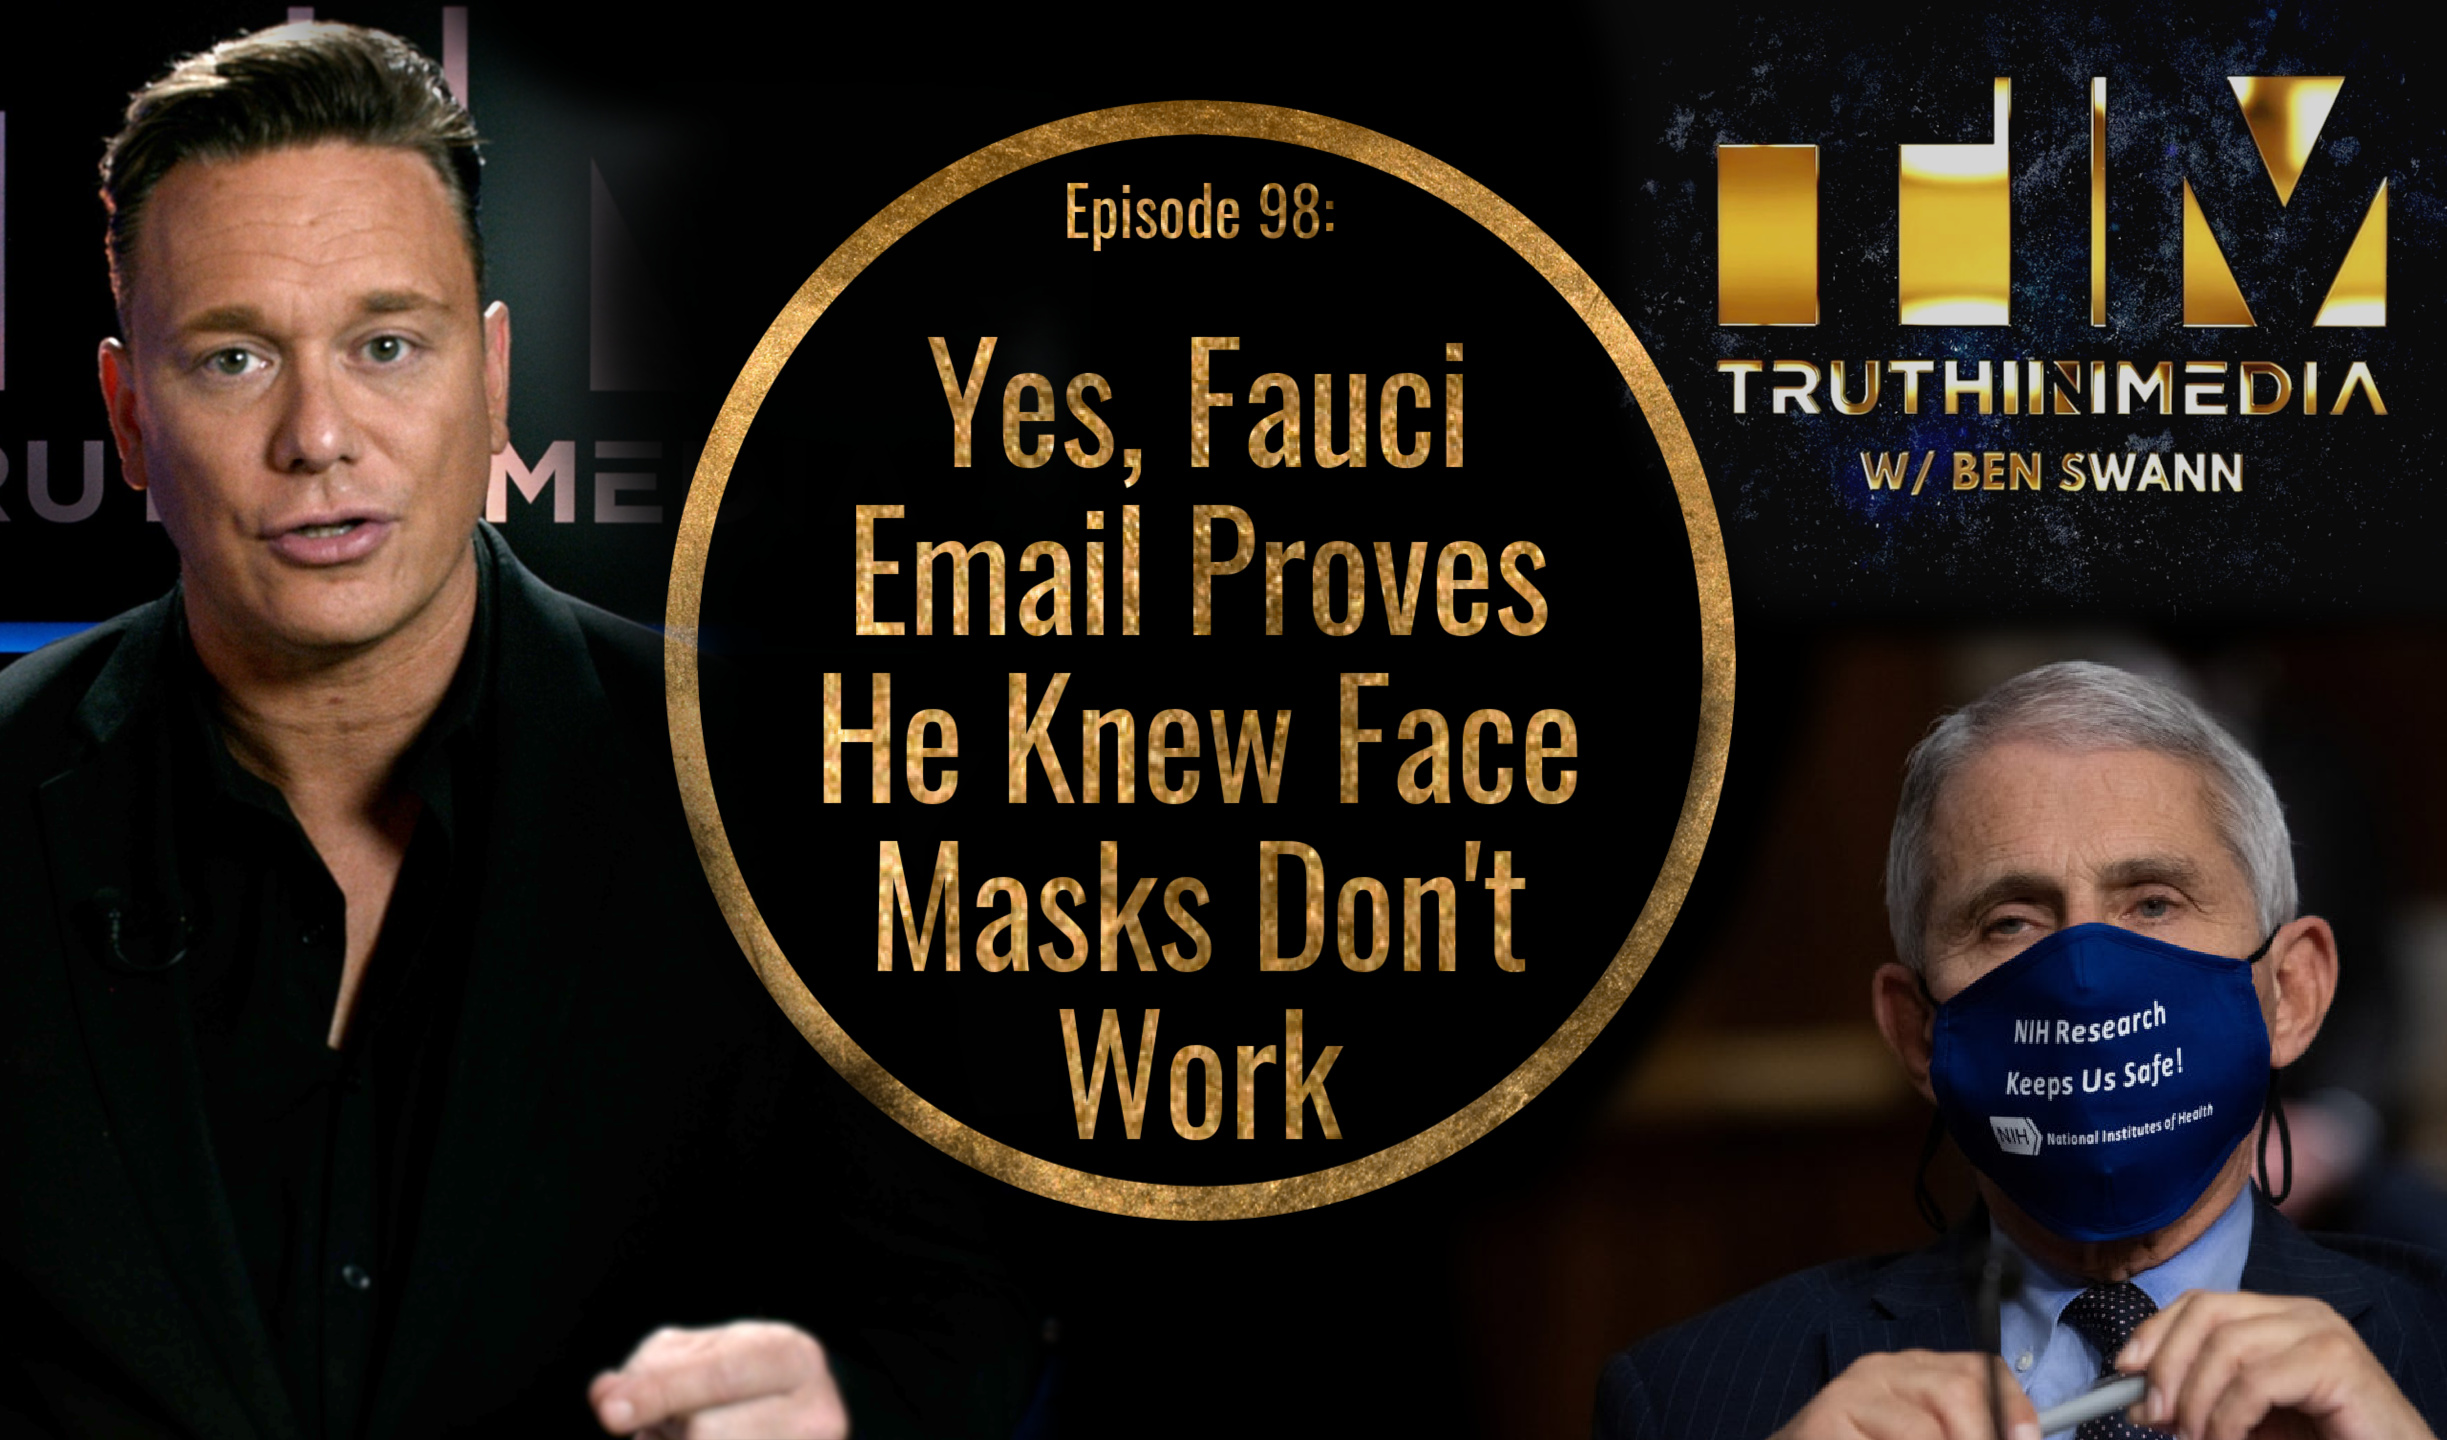 Yes, Fauci Email Proves He Knew Face Masks Don't Work